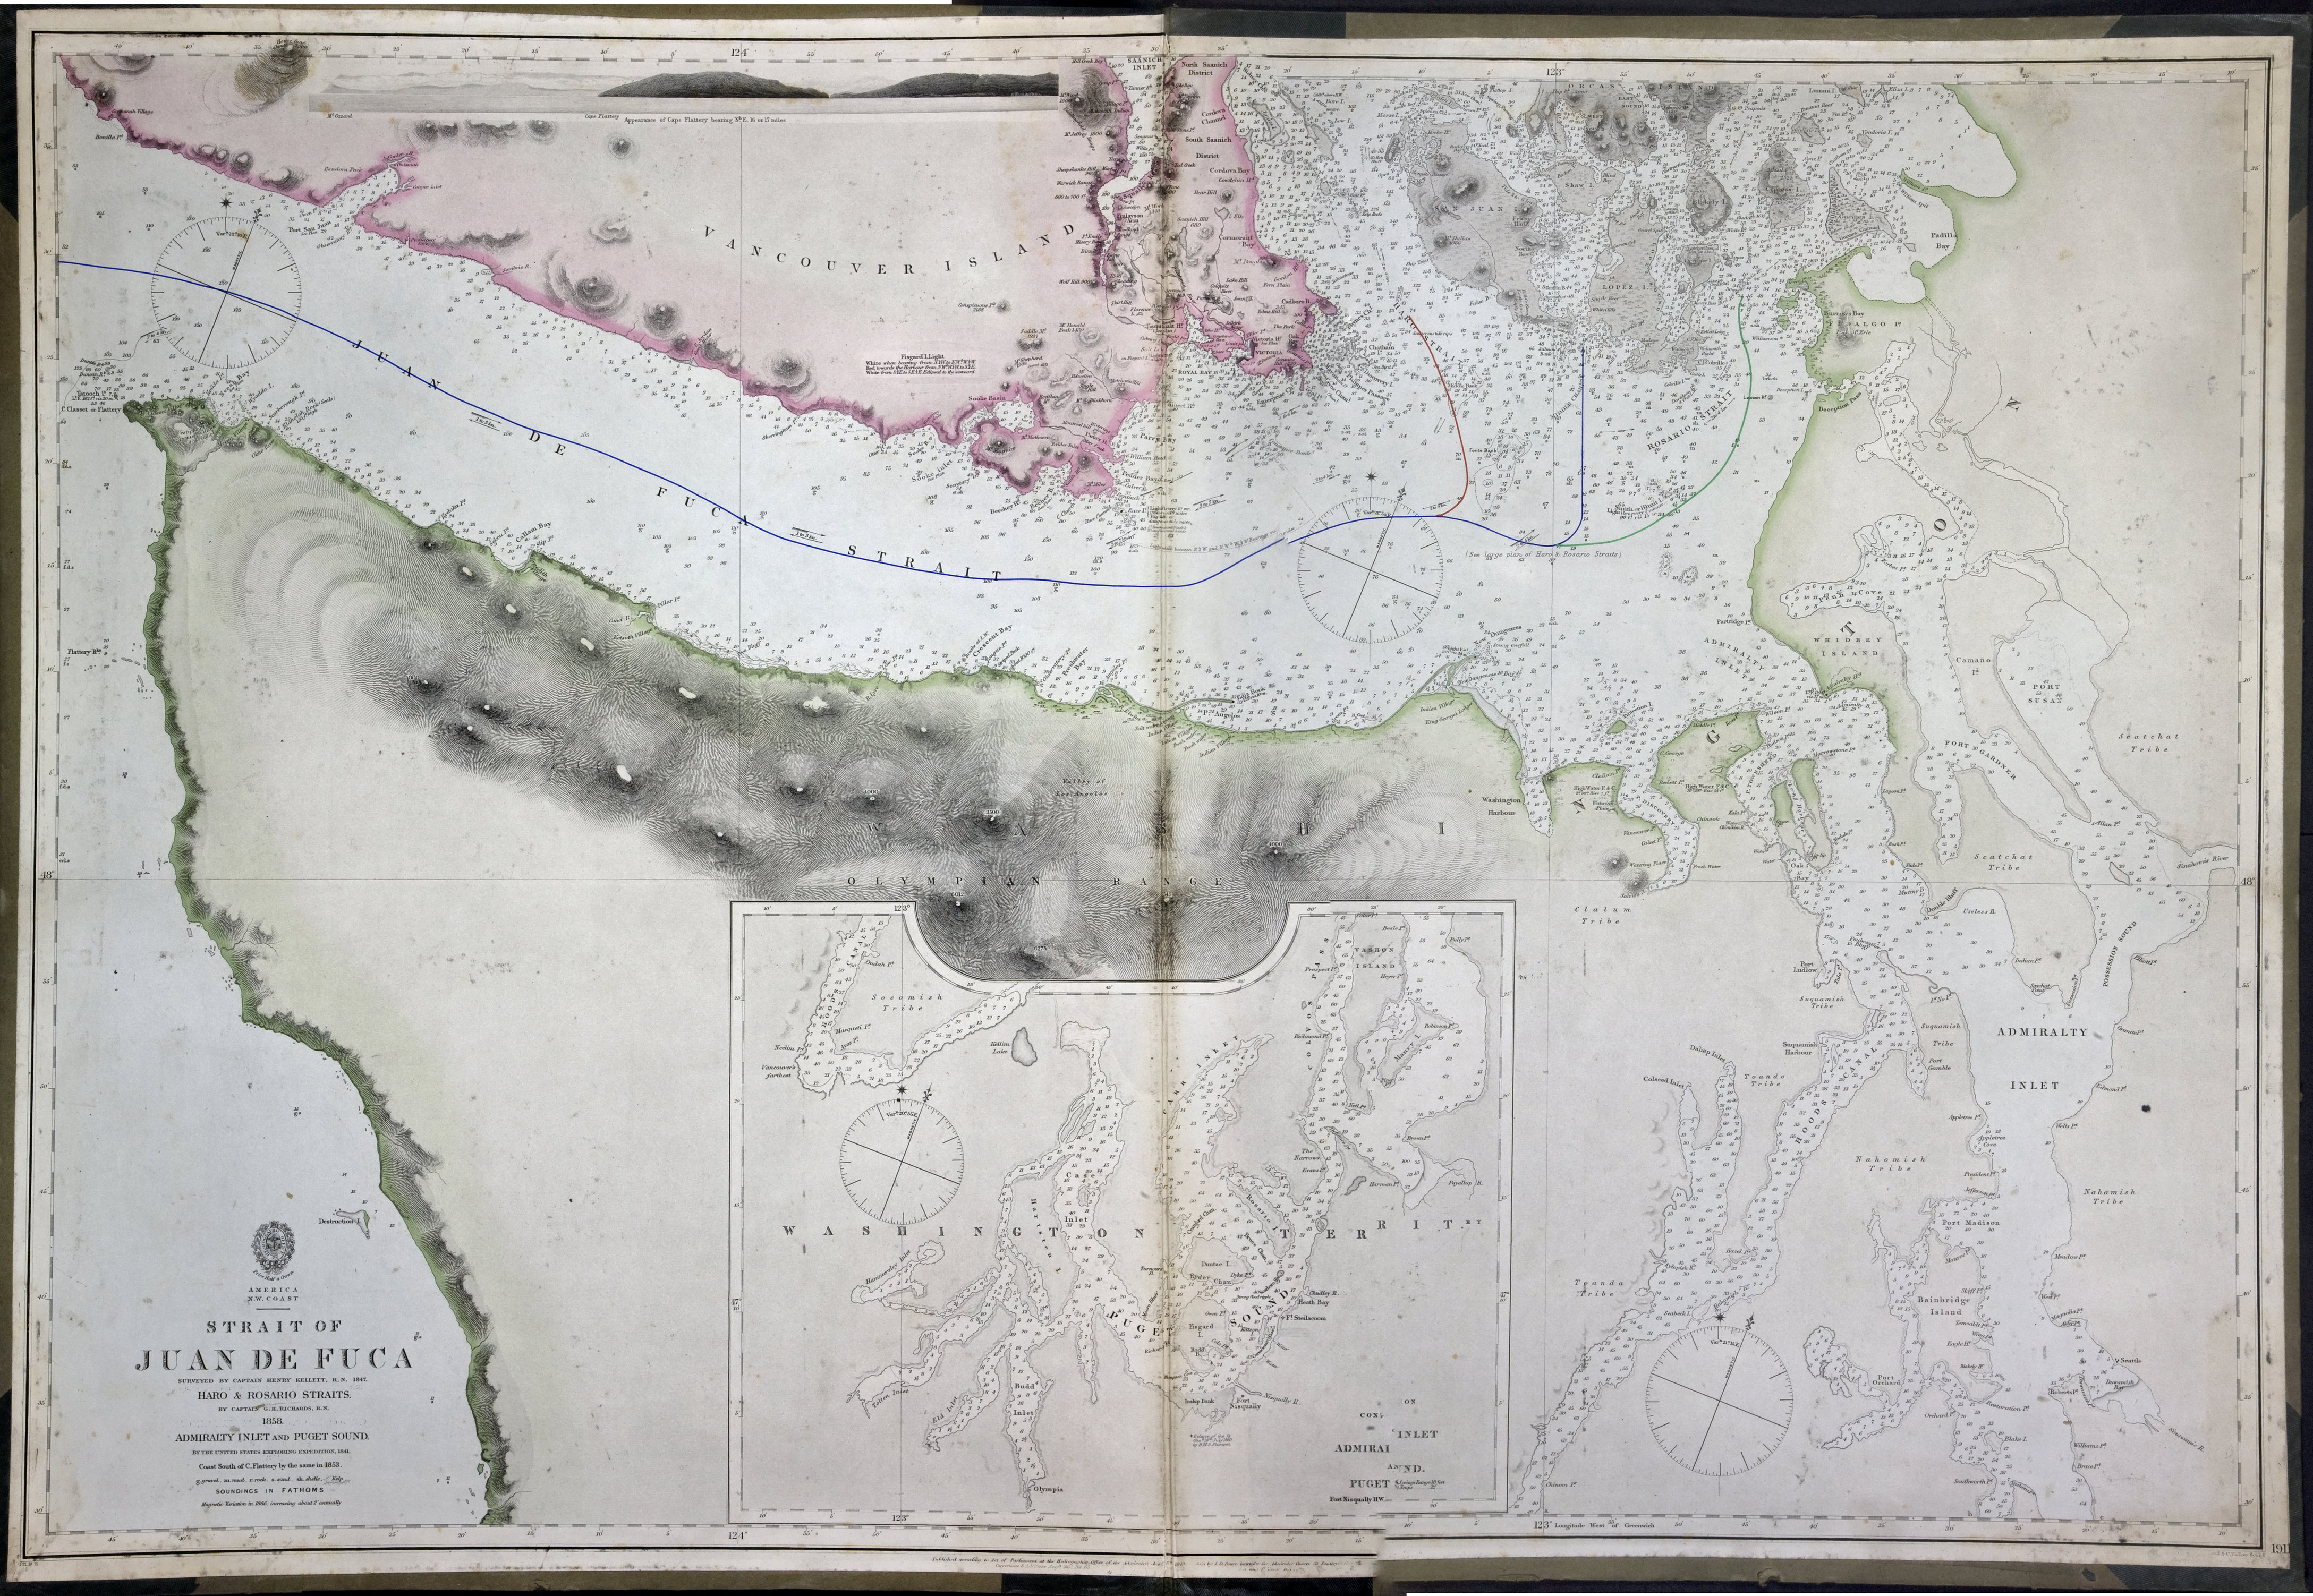 Strait of Juan de Fuca surveyed by Captain Henry Kellett, R.N., 1847, Haro & Rosario Straits by Captain G.H. Richards, R.N. 1858, Admiralty Inlet and Puget Sound by the United States exploring expedition, 1841, coast south of Cape Flattery by the same in 1853.